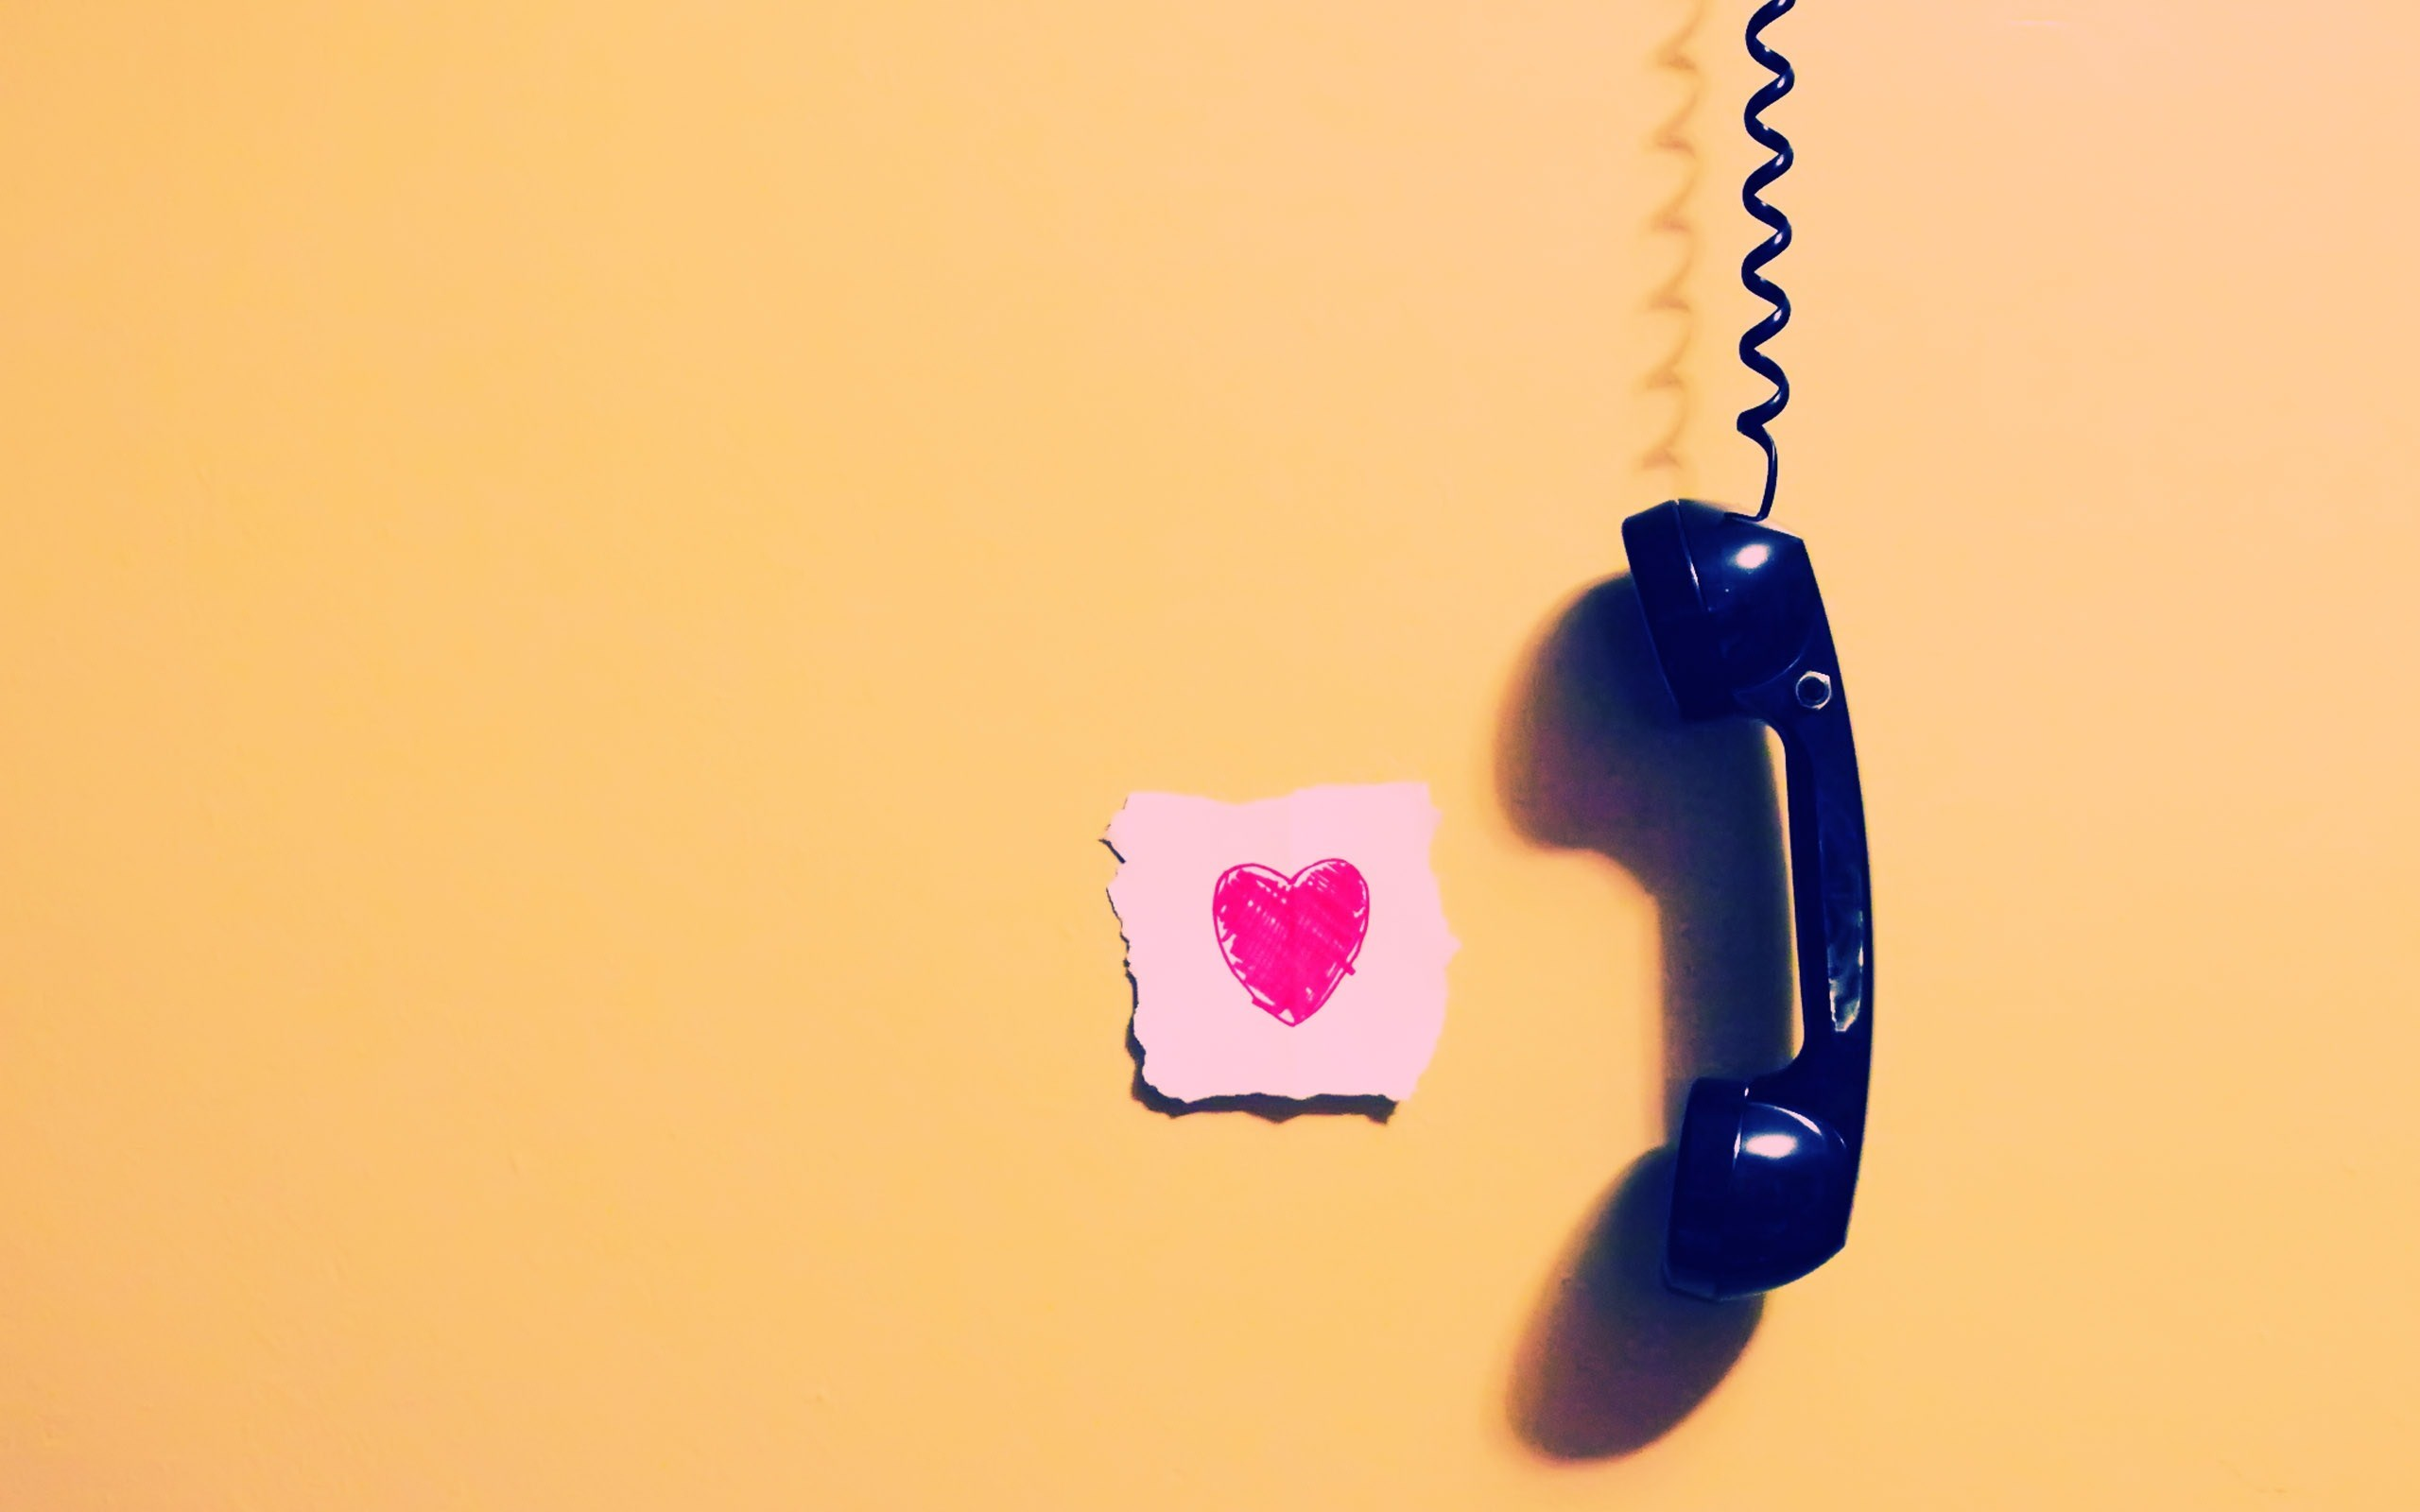 Best Love Wallpaper For Girlfriend : calling My Girlfriend Pink Heart Love wallpaper 2560x1600 #27927